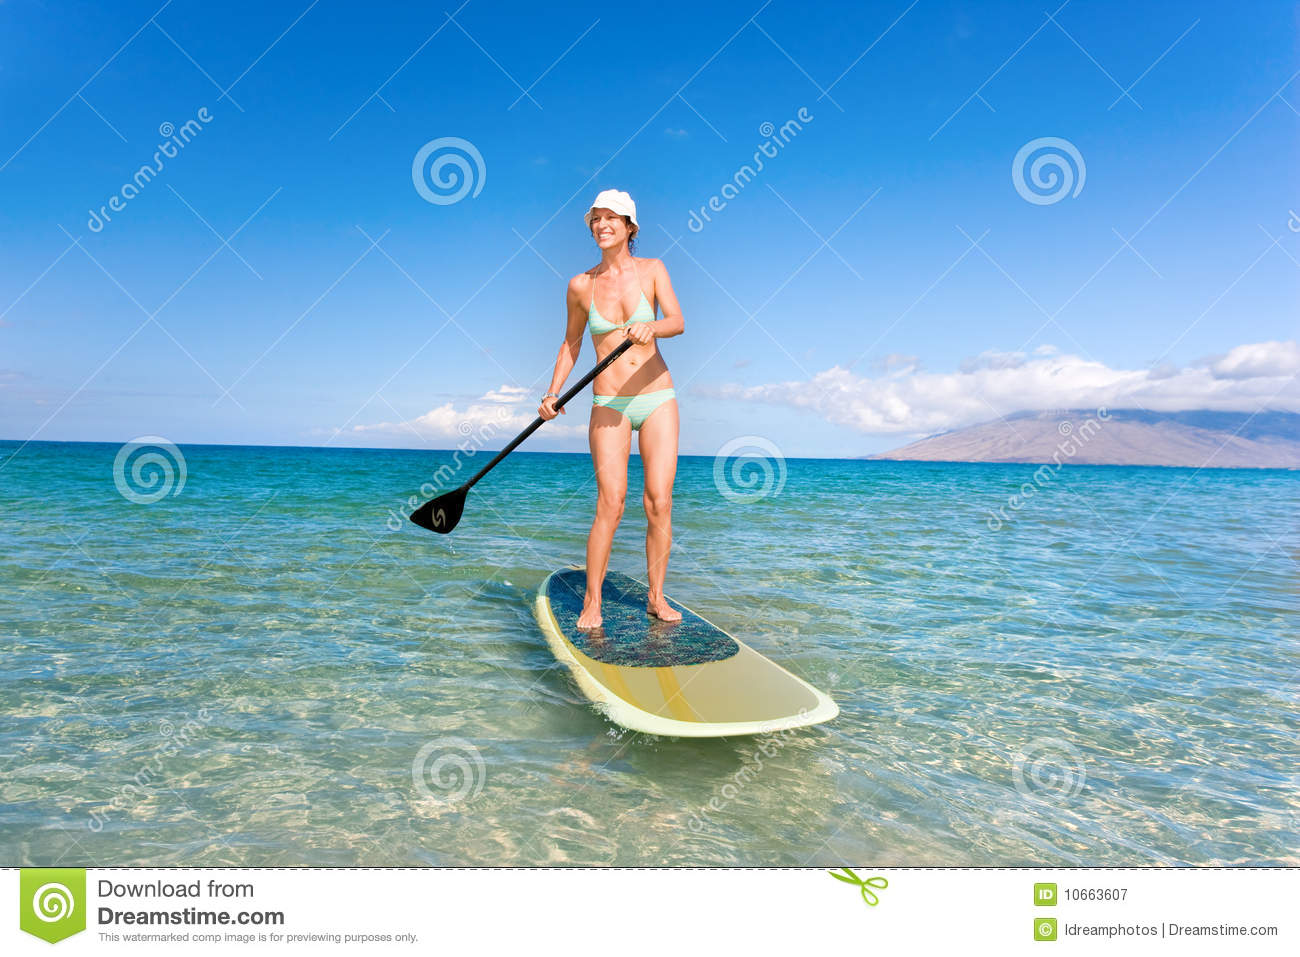 Woman stand up paddle board